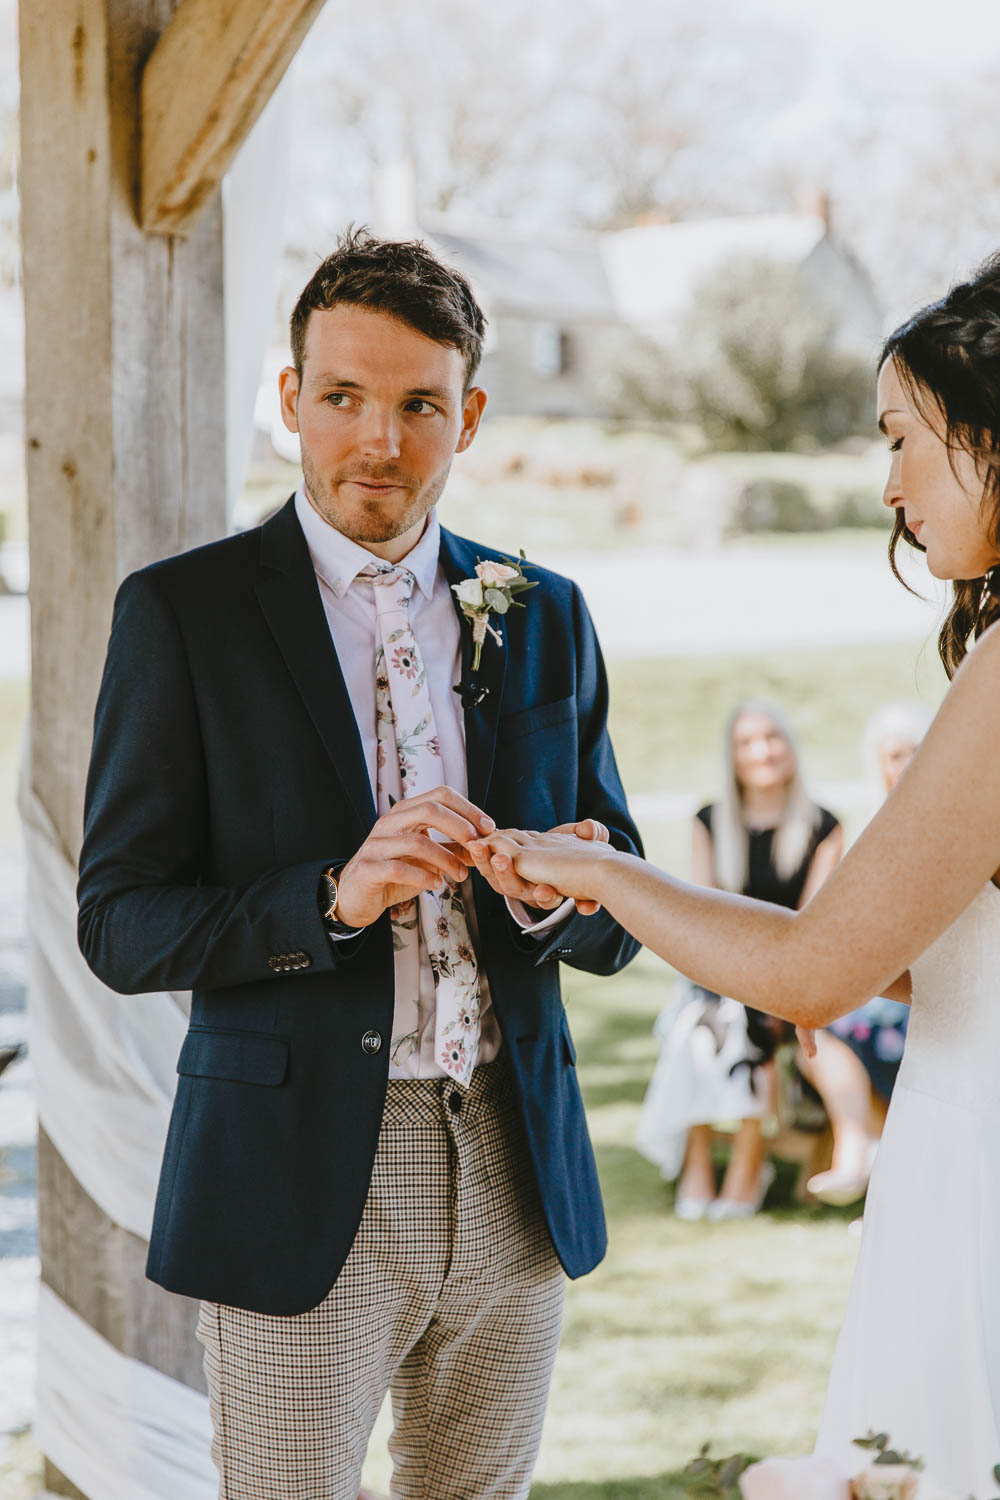 Groom Suit Style Look Blazer Chinos Floral Tie Braces Trevenna Barns Wedding Wild Tide Creative